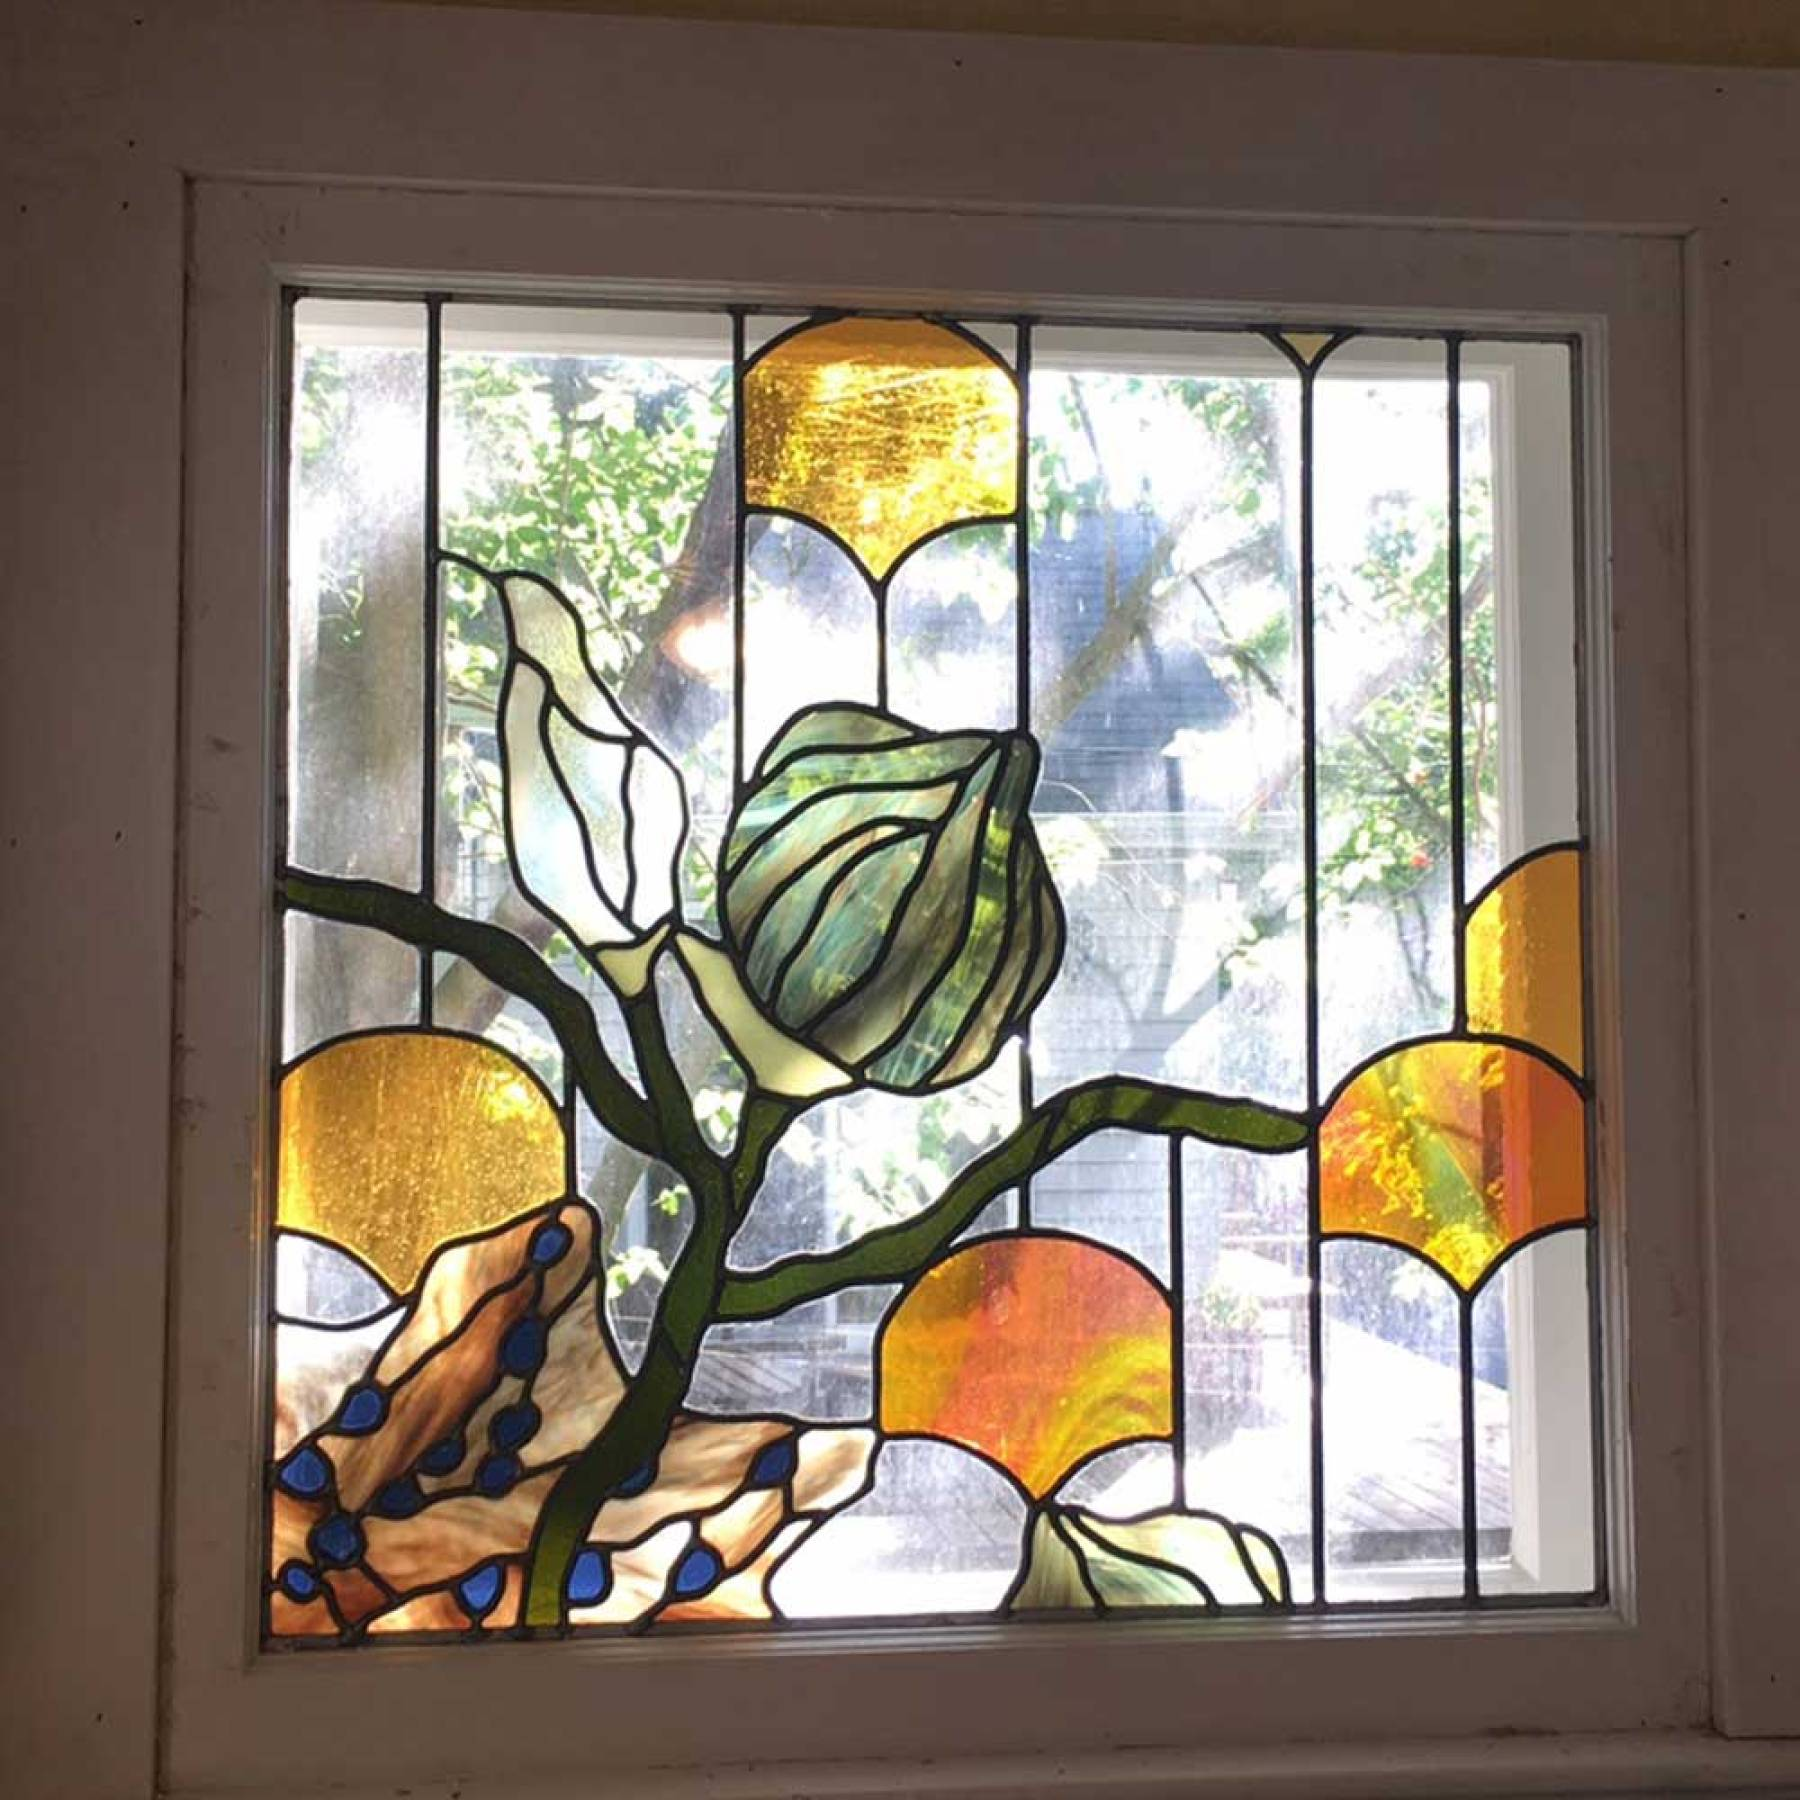 Stained glass seedpods